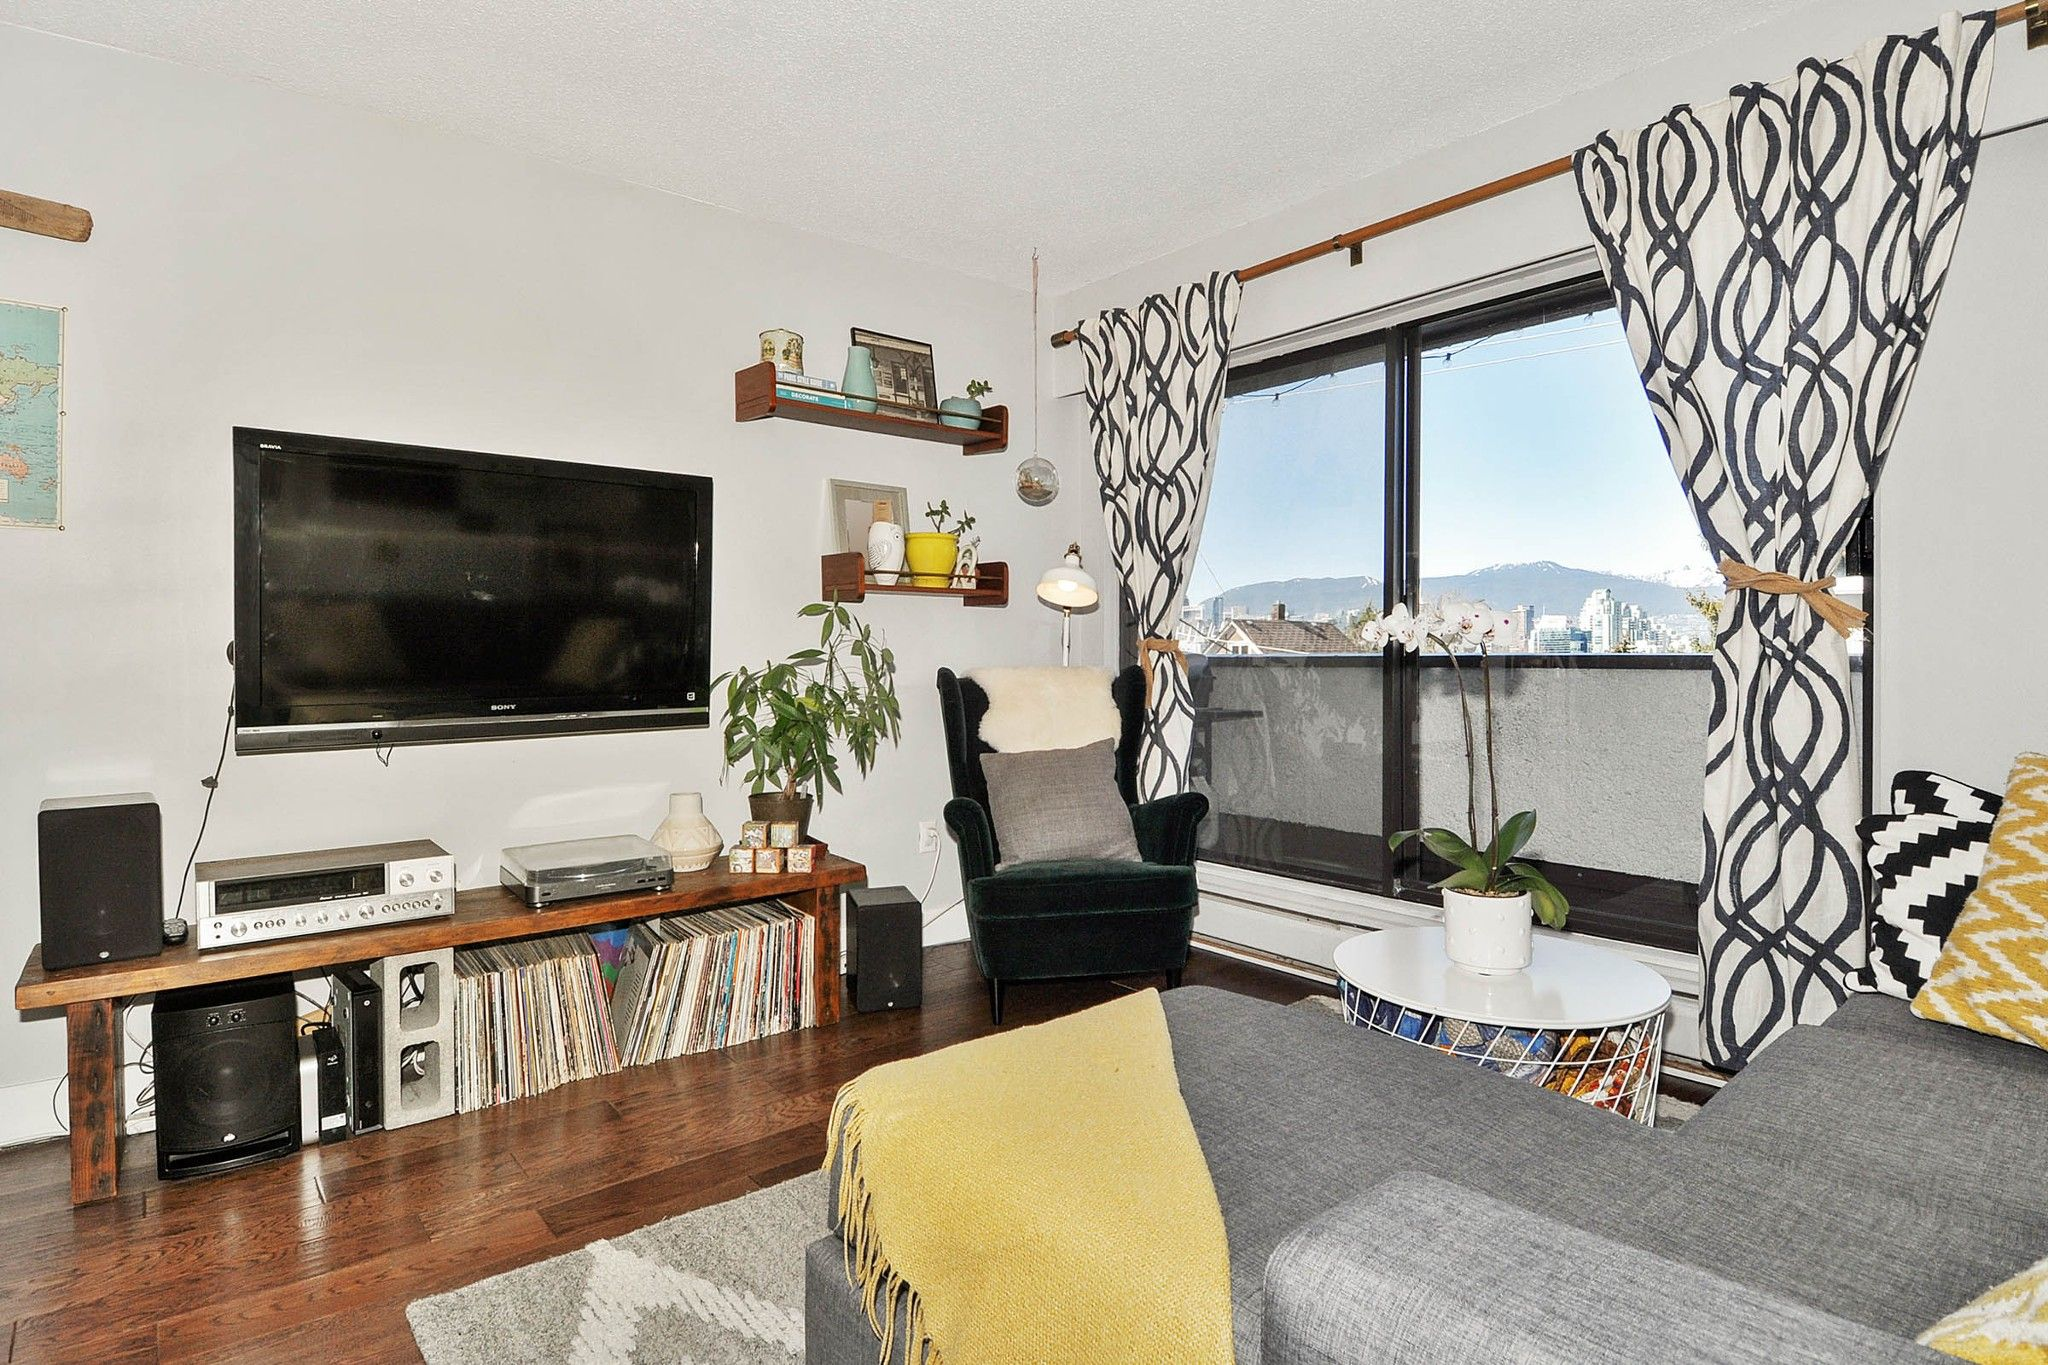 """Photo 3: Photos: 302 391 E 7TH Avenue in Vancouver: Mount Pleasant VE Condo for sale in """"OAKWOOD PARK"""" (Vancouver East)  : MLS®# R2352076"""